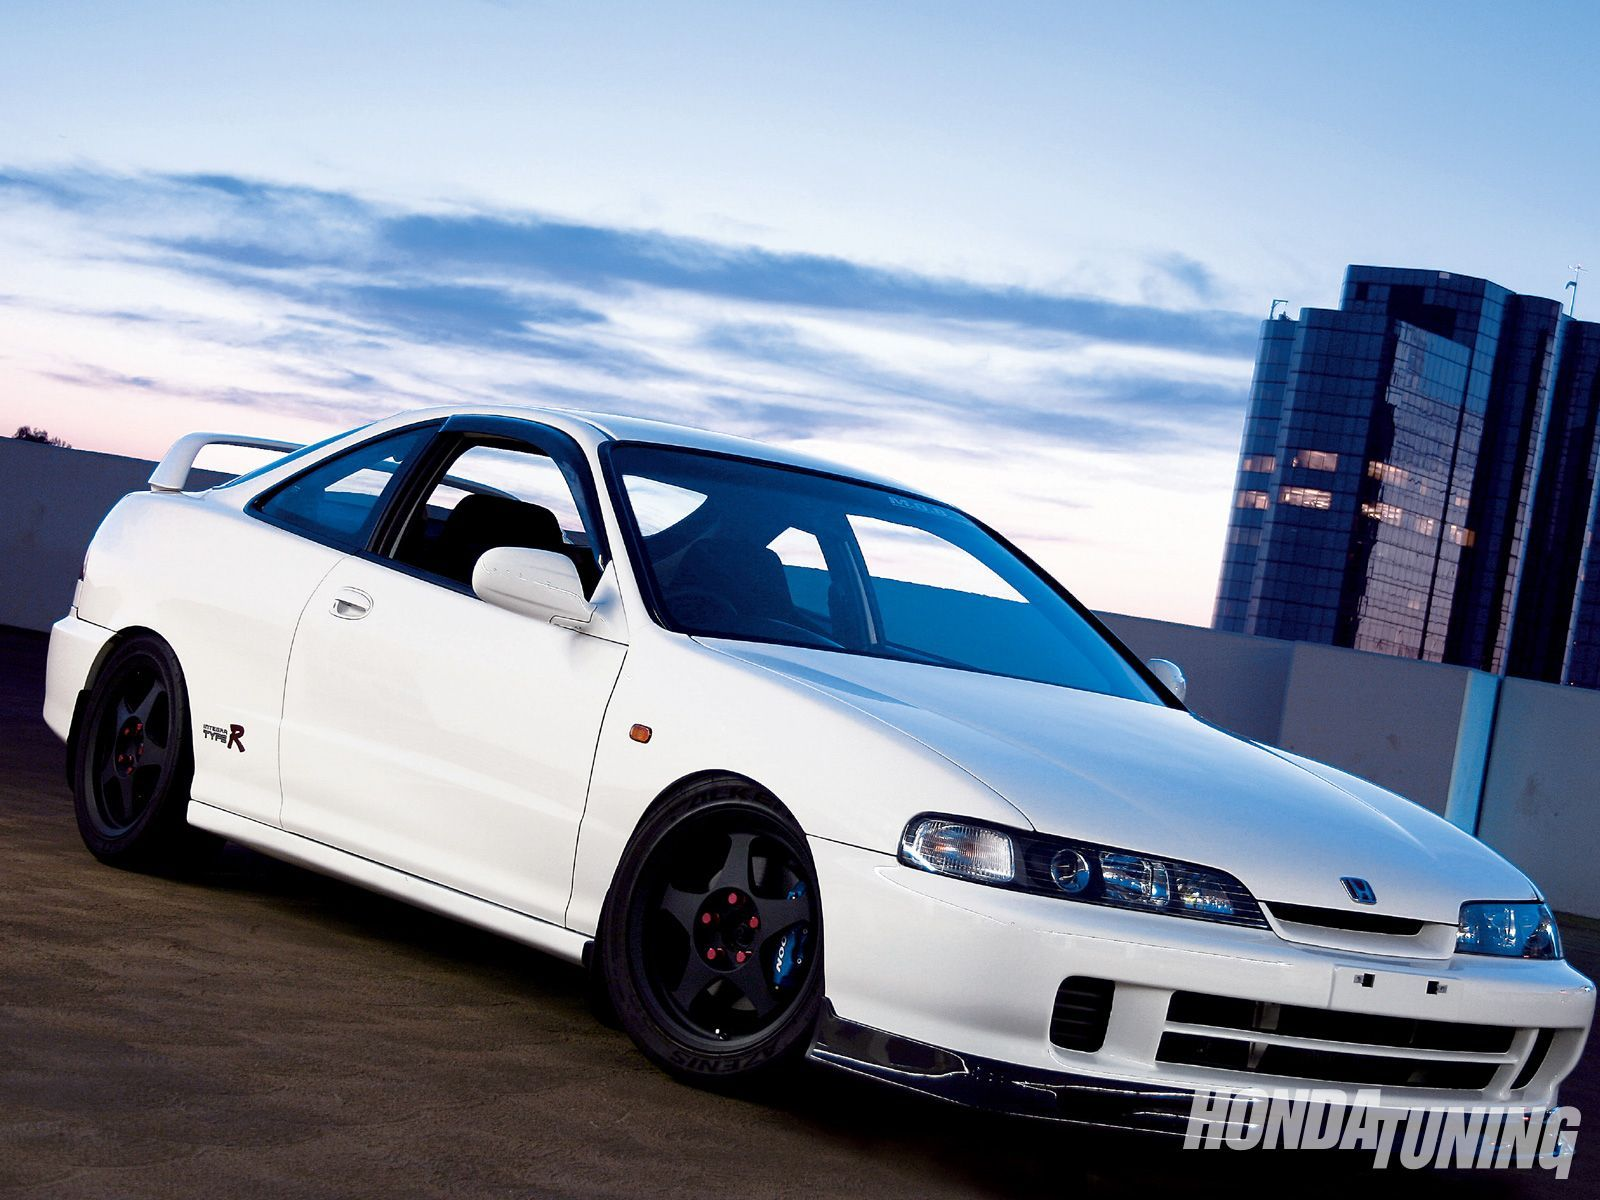 1997 acura integra type r 2000 jdm b18c honda tuning. Black Bedroom Furniture Sets. Home Design Ideas